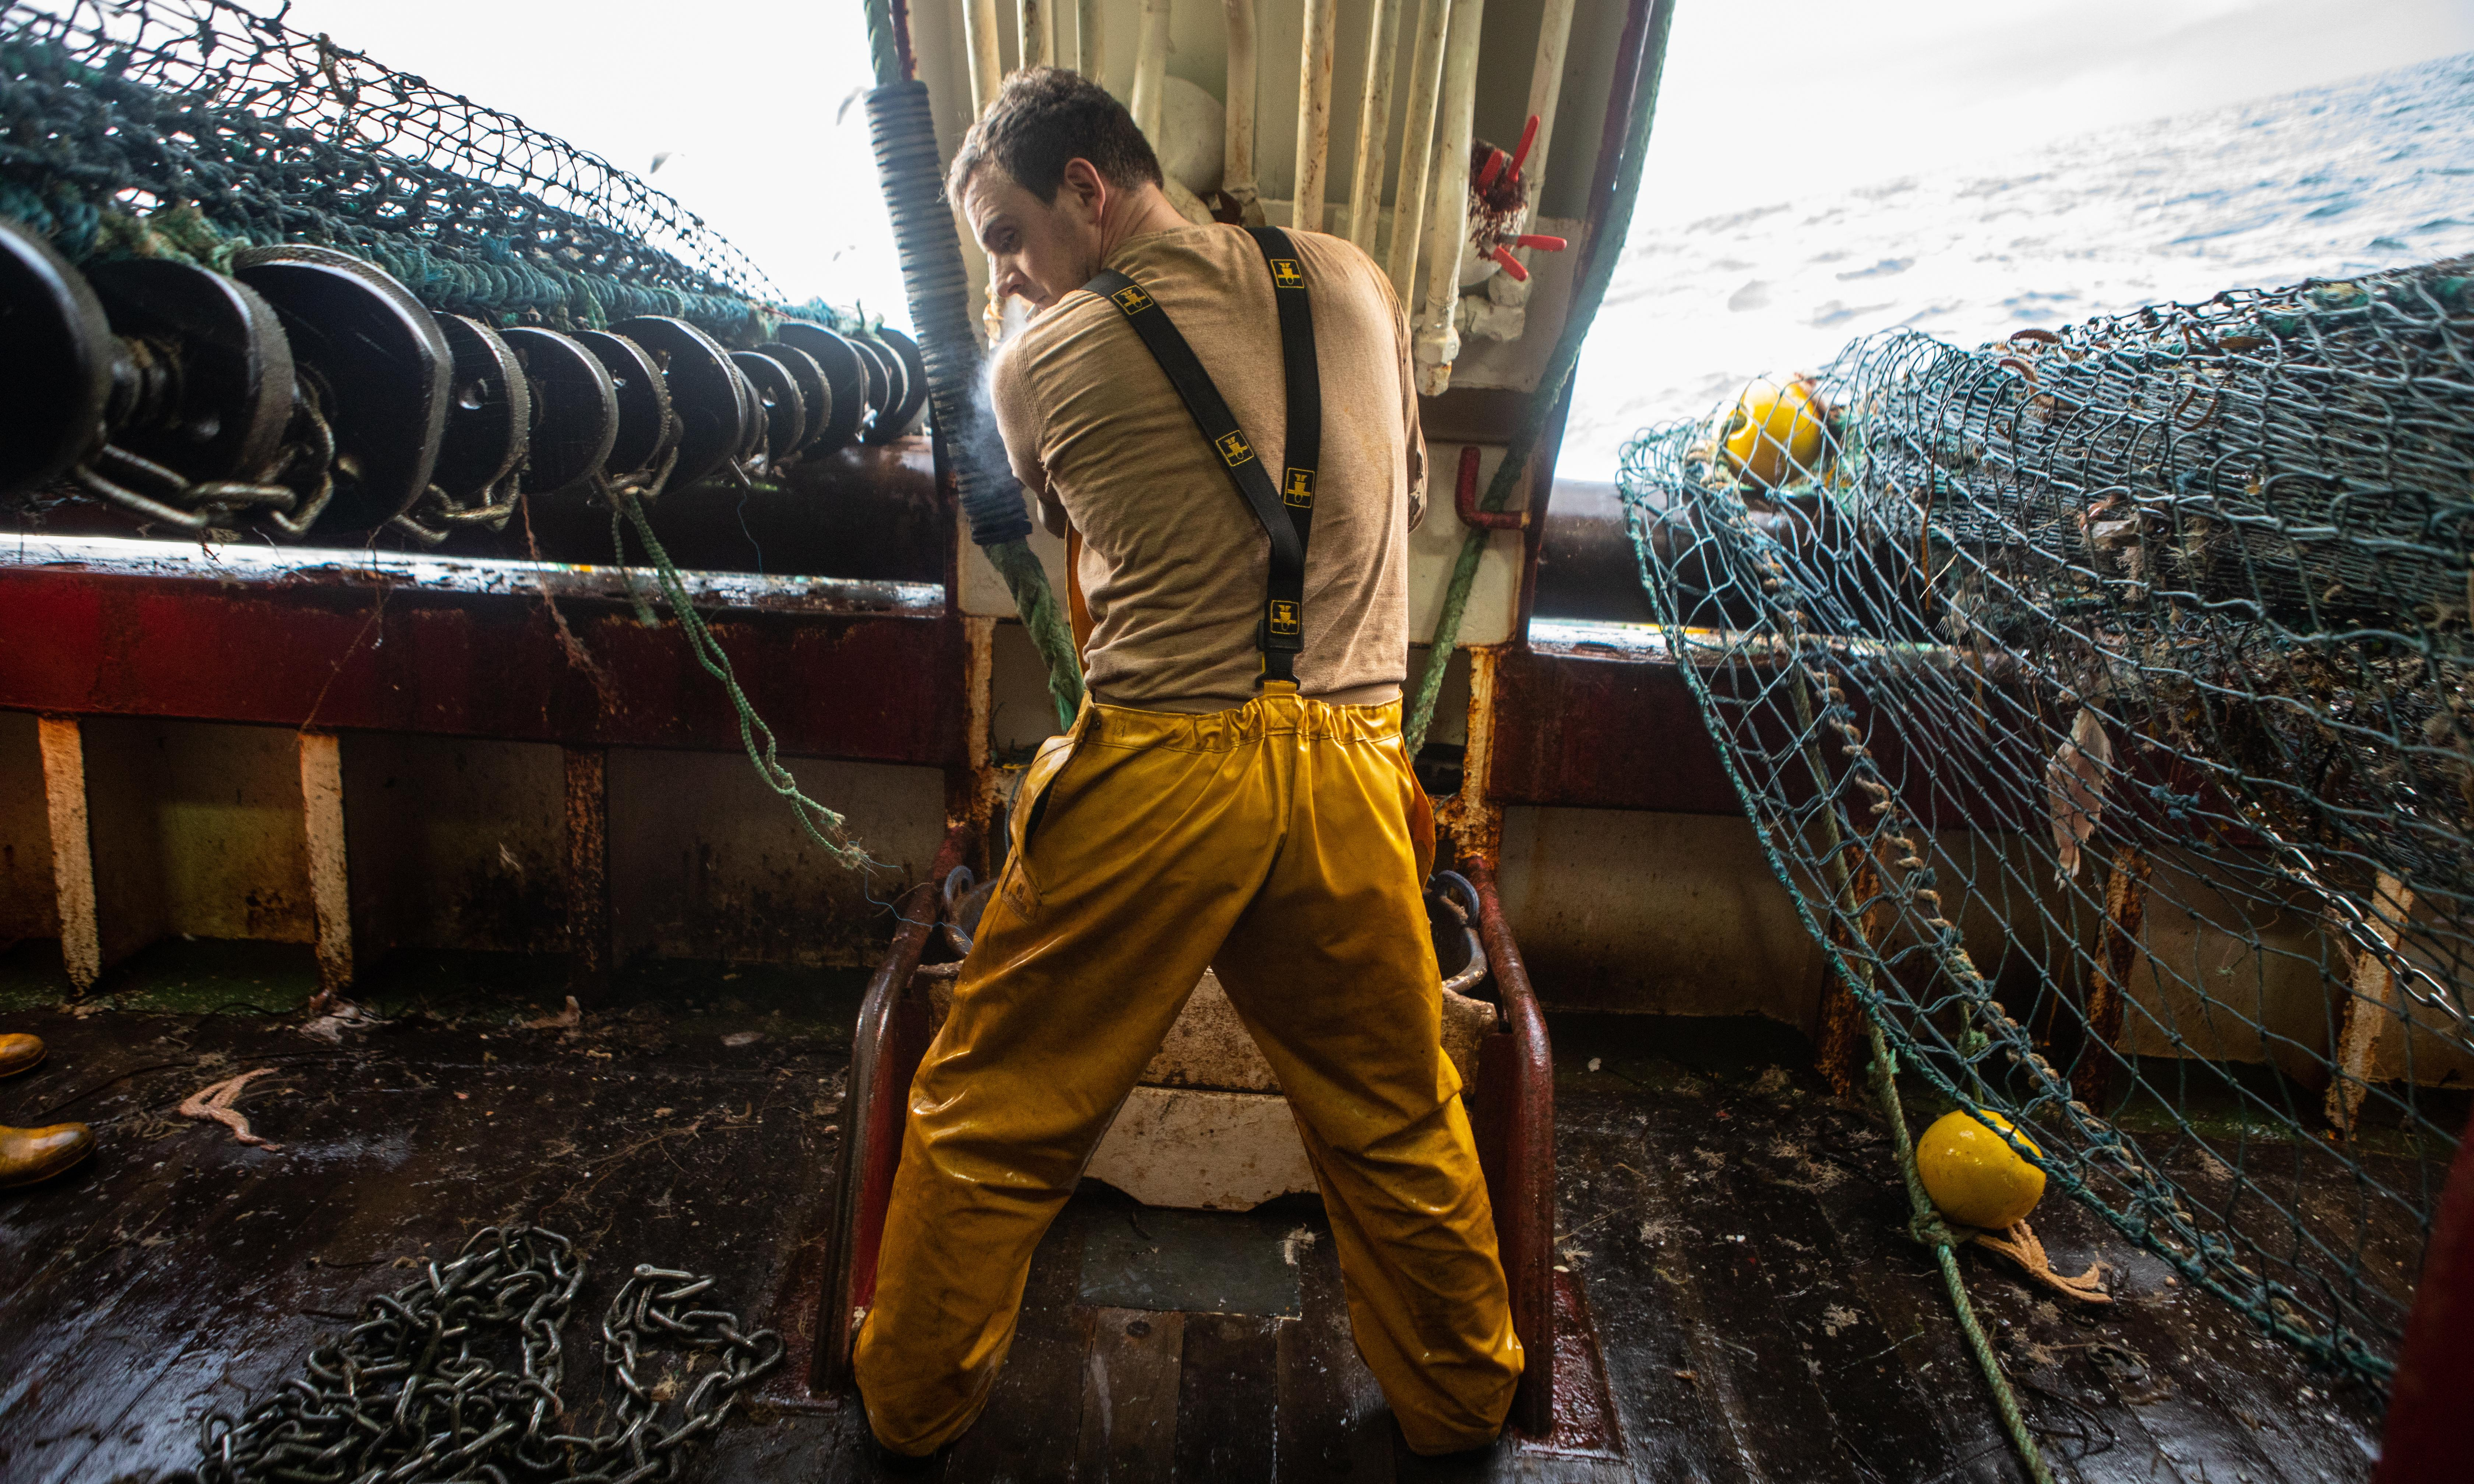 What's the catch? British fishermen's hopes and fears for Brexit deal